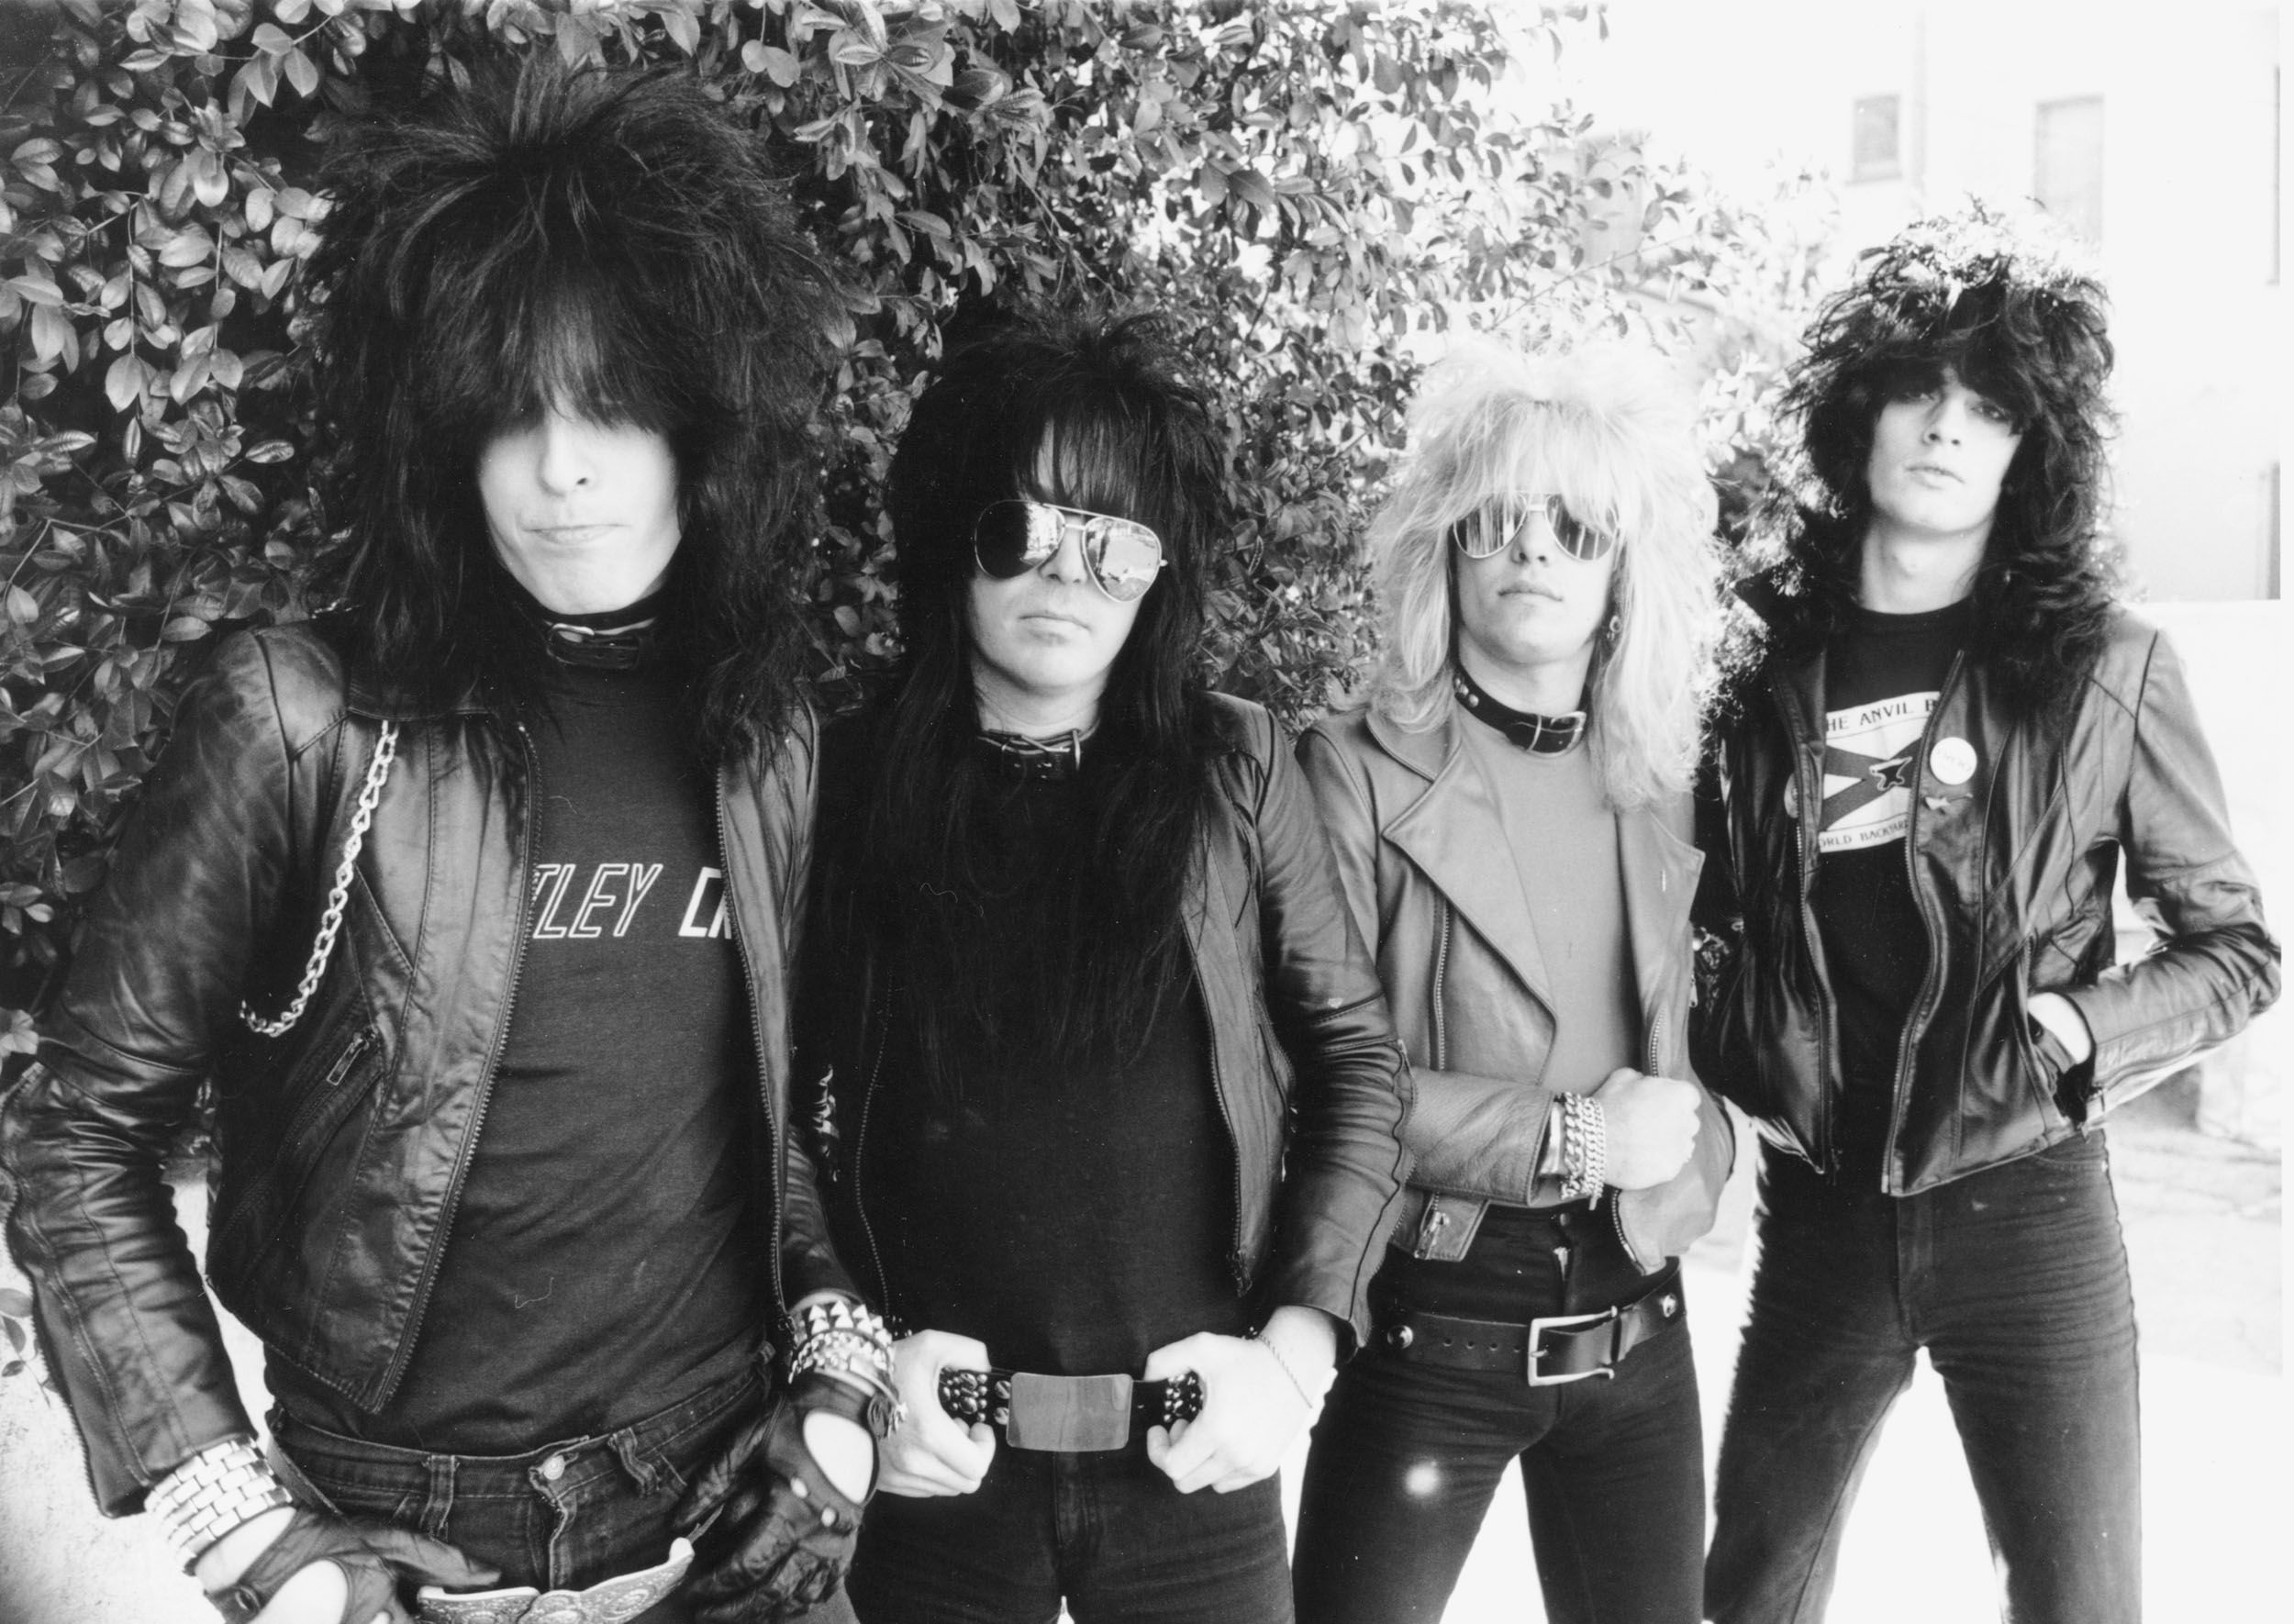 Mötley Crüe photographed in Los Angeles in 1981.